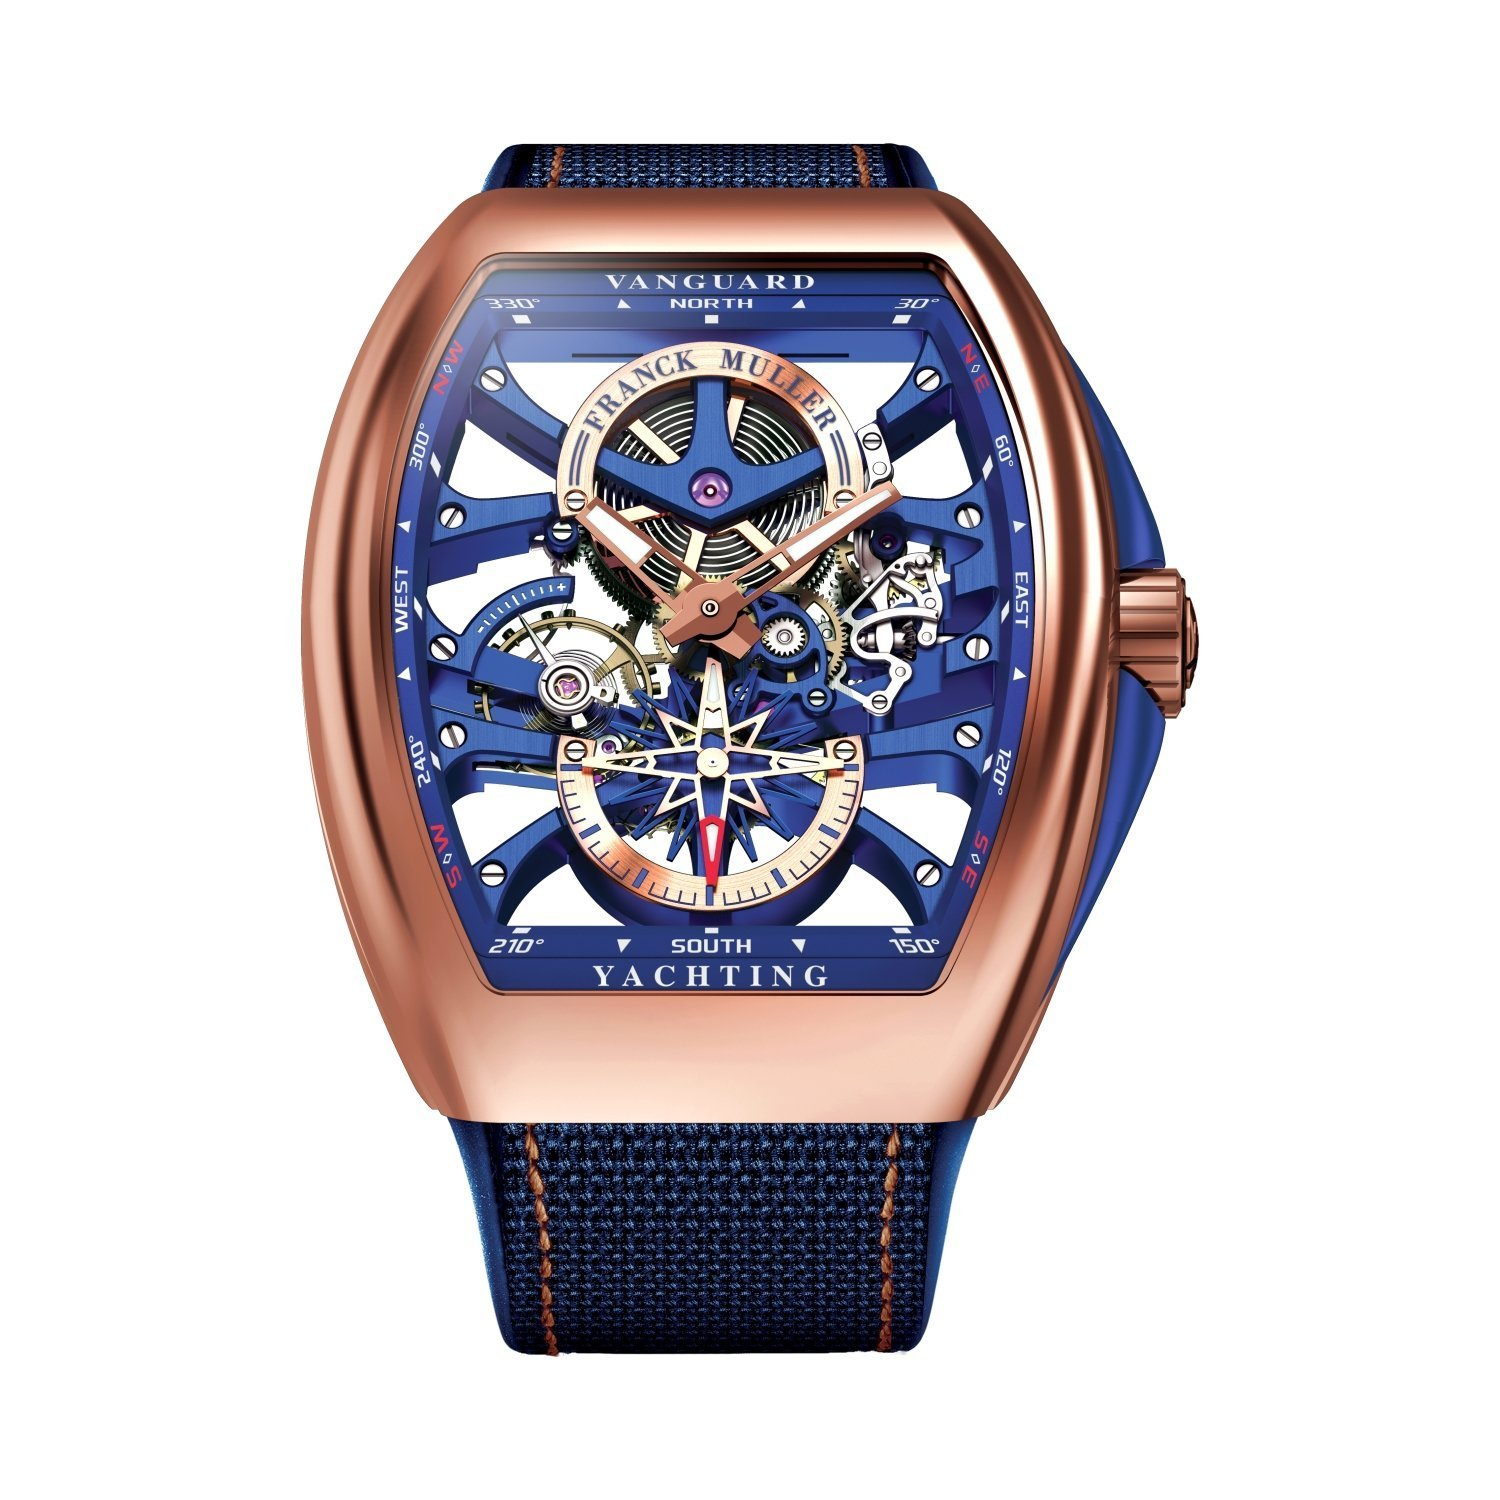 Montre Franck Muller Vanguard Yachting